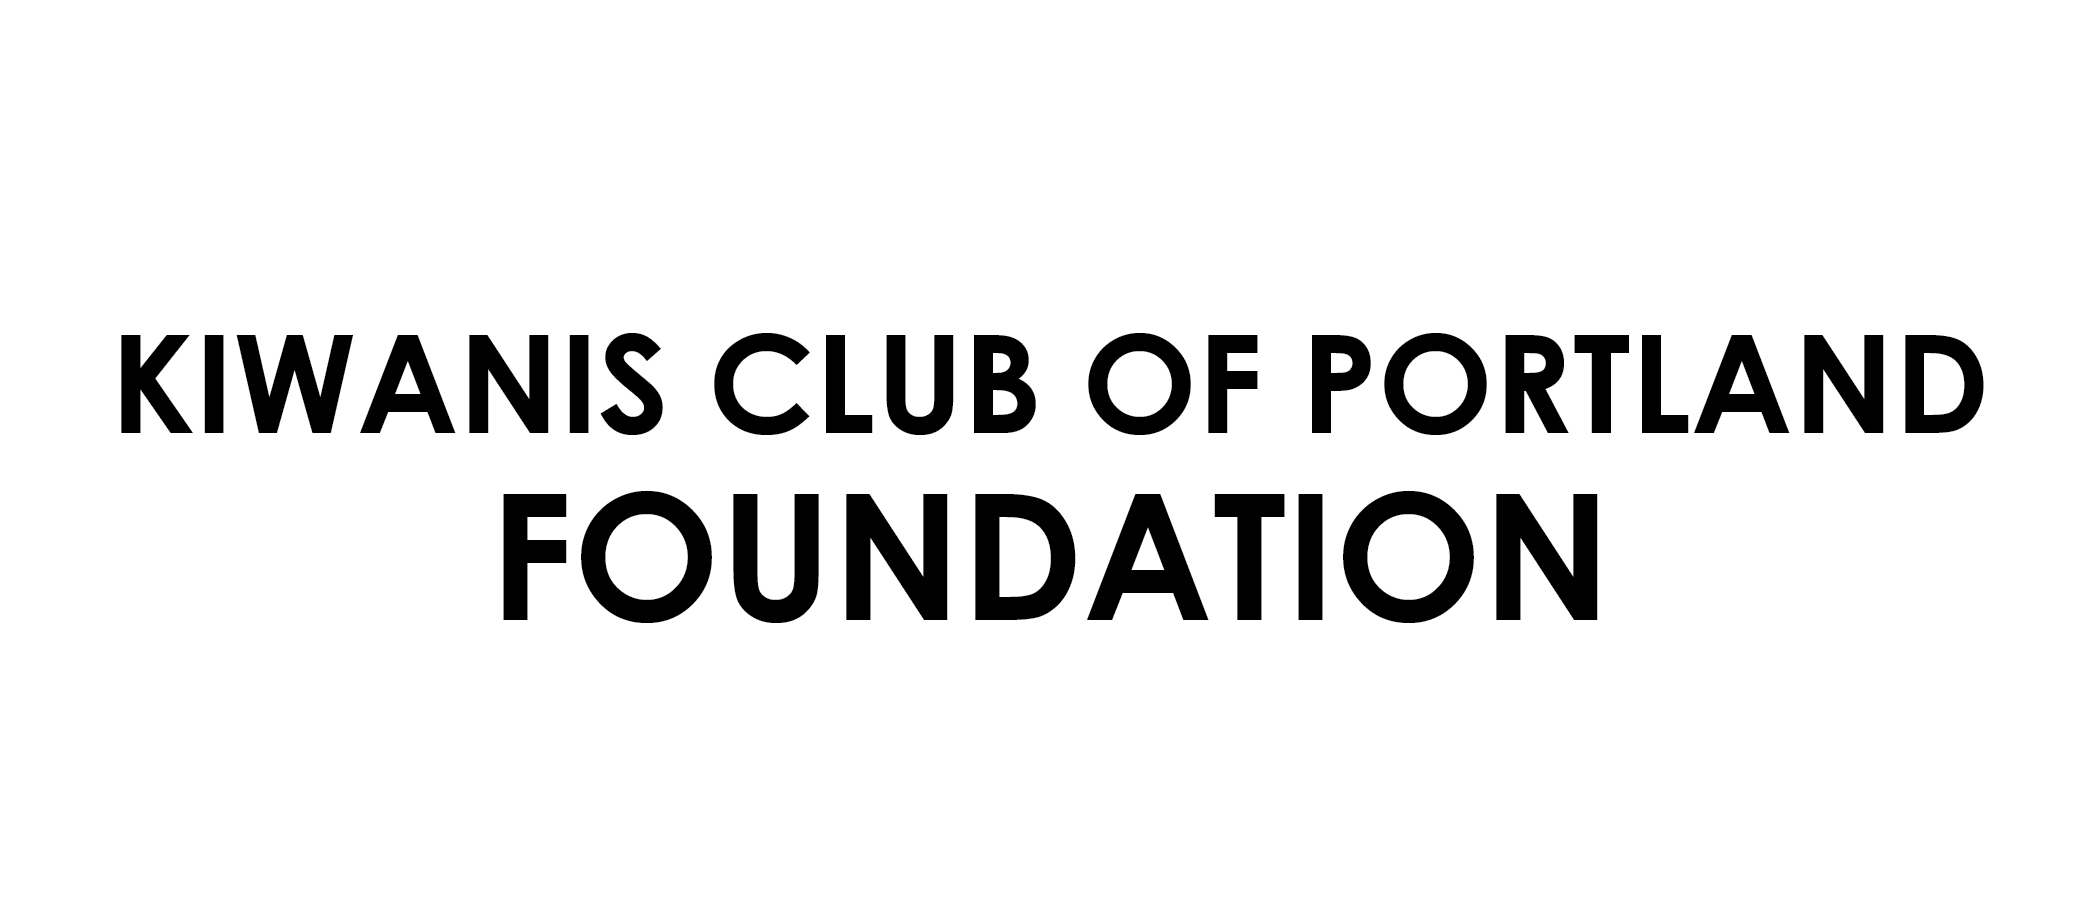 Kiwanis Club of Portland Foundation